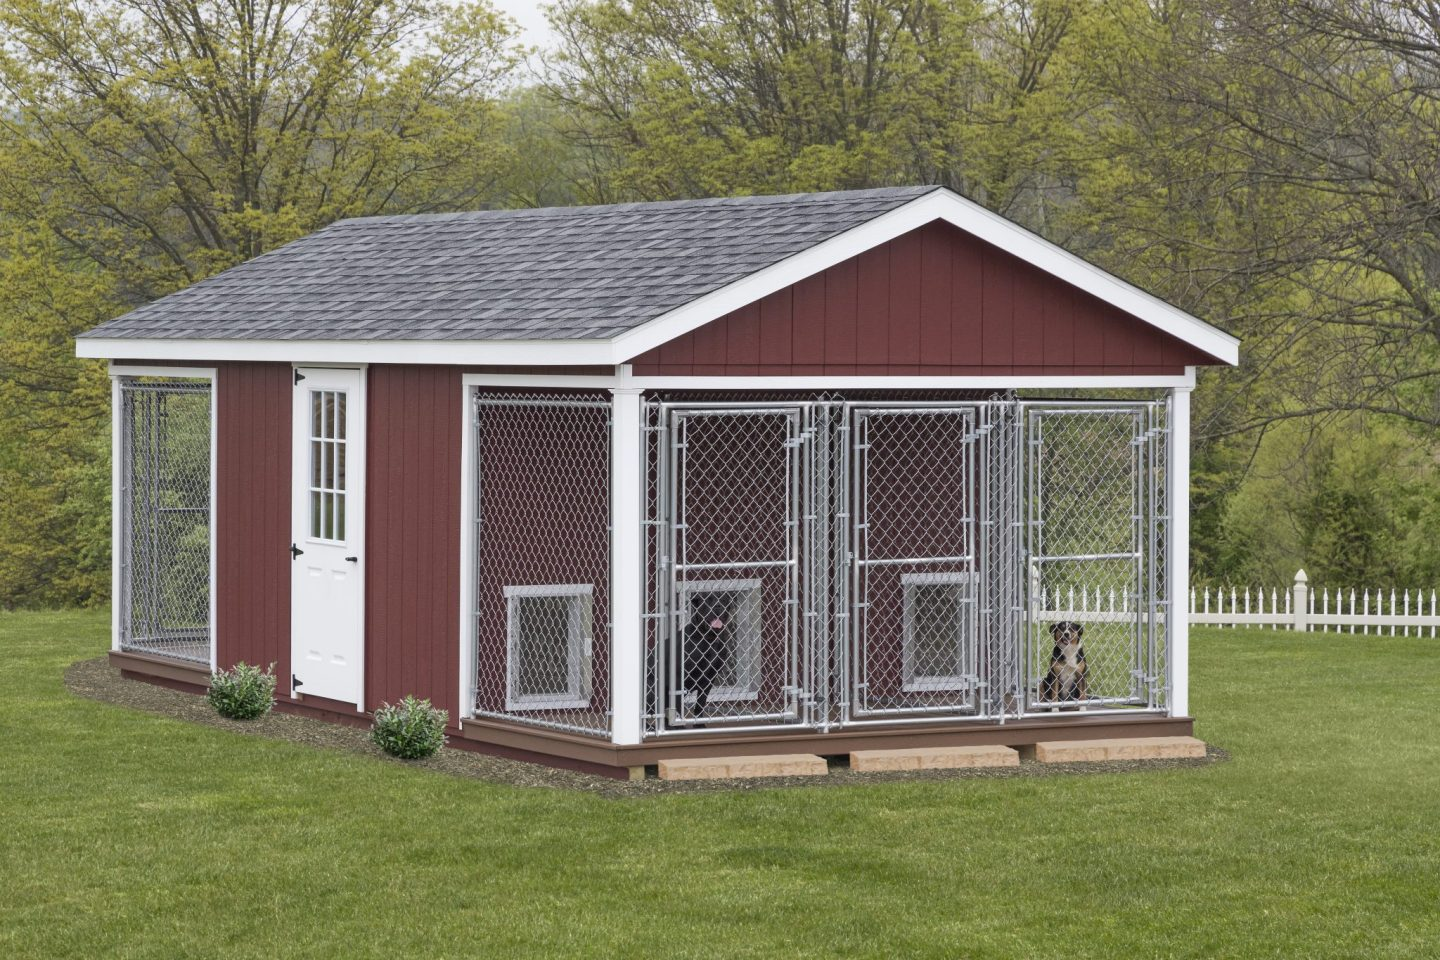 12x24-Dog-Kennel-1440x960 Backyard Shed Ideas For Dogs on ideas for backyard cabanas, ideas for backyard trellis, ideas for backyard lighting, ideas for backyard landscaping, ideas for backyard stairs, ideas for backyard walkways, ideas for backyard walls, ideas for backyard trees, ideas for backyard gardens, ideas for backyard water features, ideas for backyard fireplaces, ideas for plastic sheds, ideas for backyard bridges, ideas for painting sheds, ideas for backyard floors, ideas for backyard porches, ideas for backyard hot tubs, ideas for small sheds, ideas for backyard patios, ideas for backyard fencing,